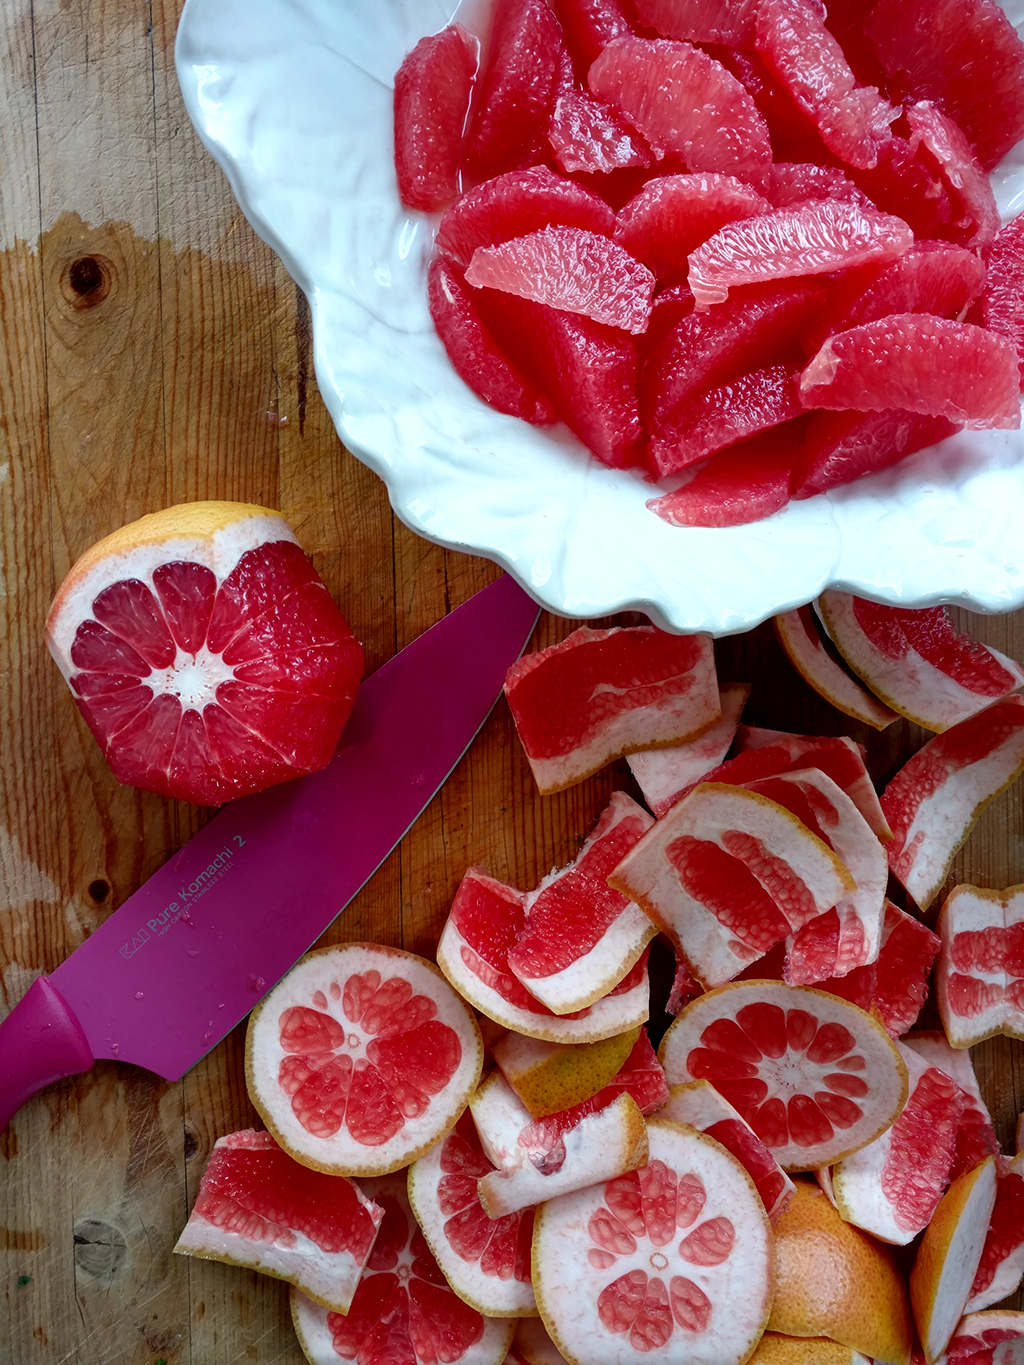 Cutting grapefruit slices